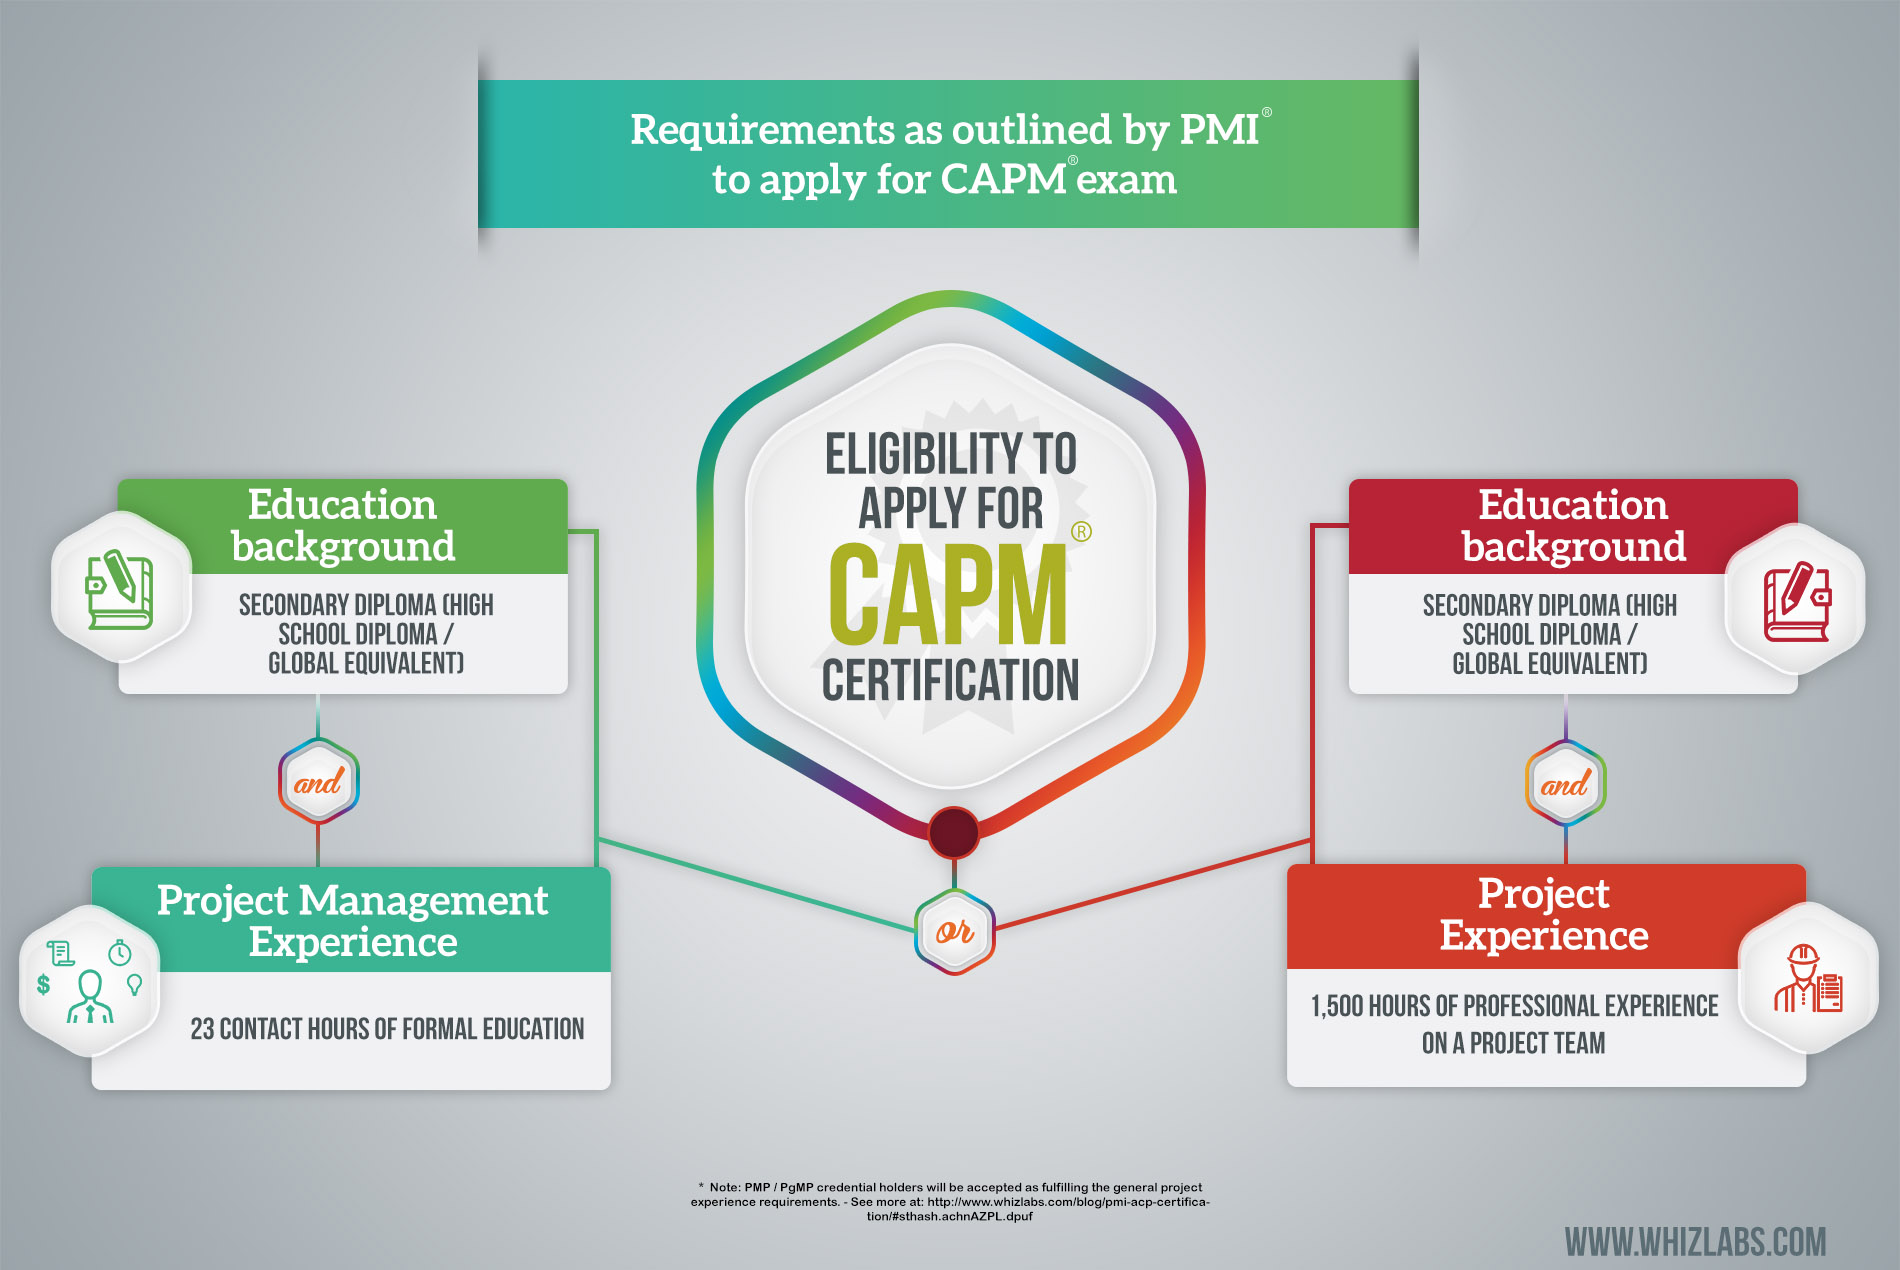 Top 10 Tips To Prepare For The Capm Certification Exam Whizlabs Blog